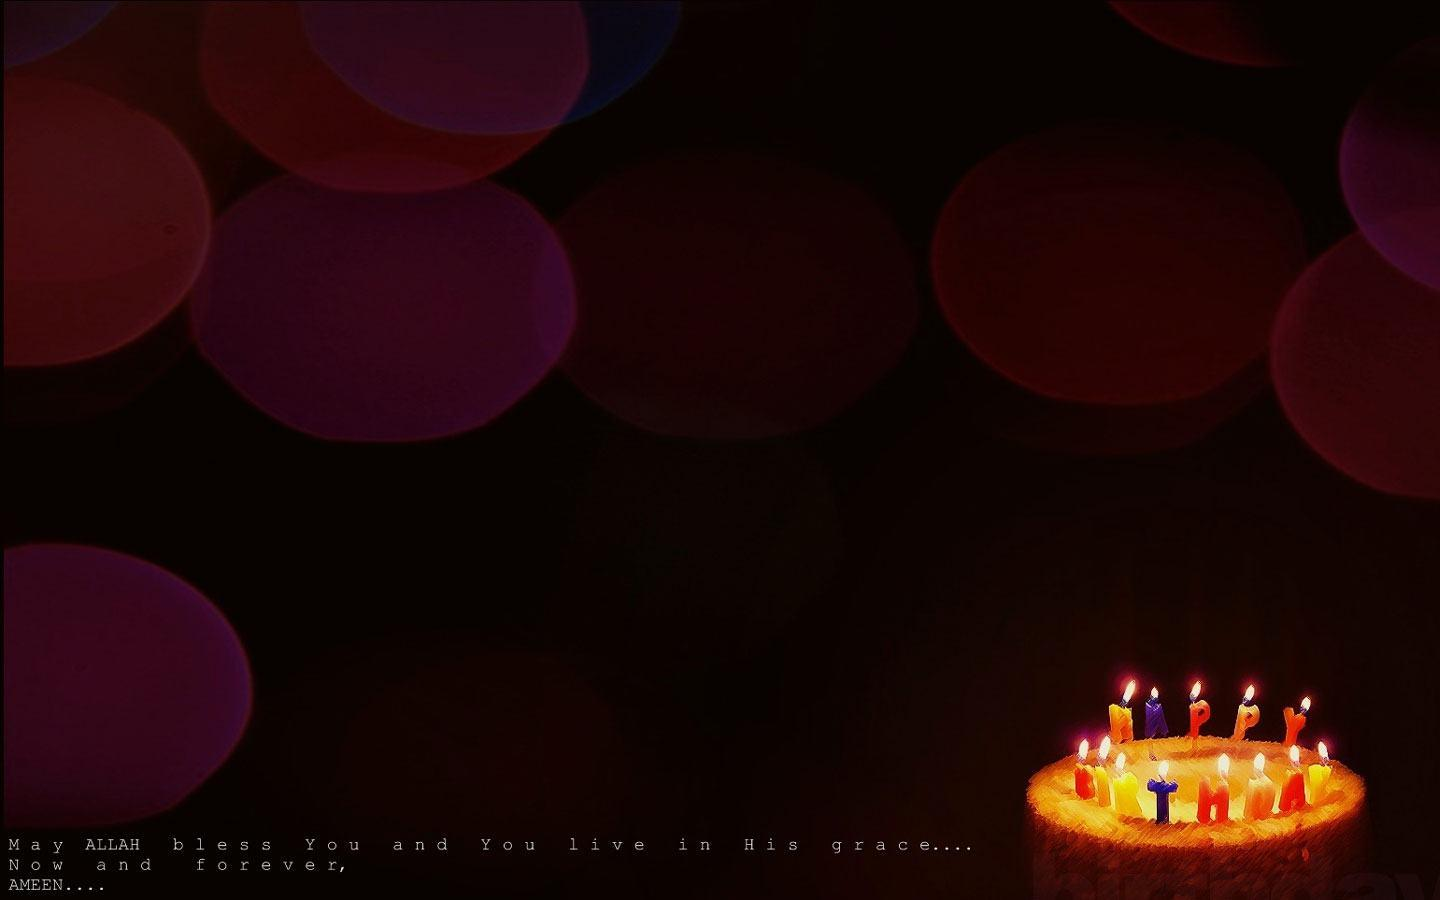 birthday background hd wallpapers ; qoF6hiR